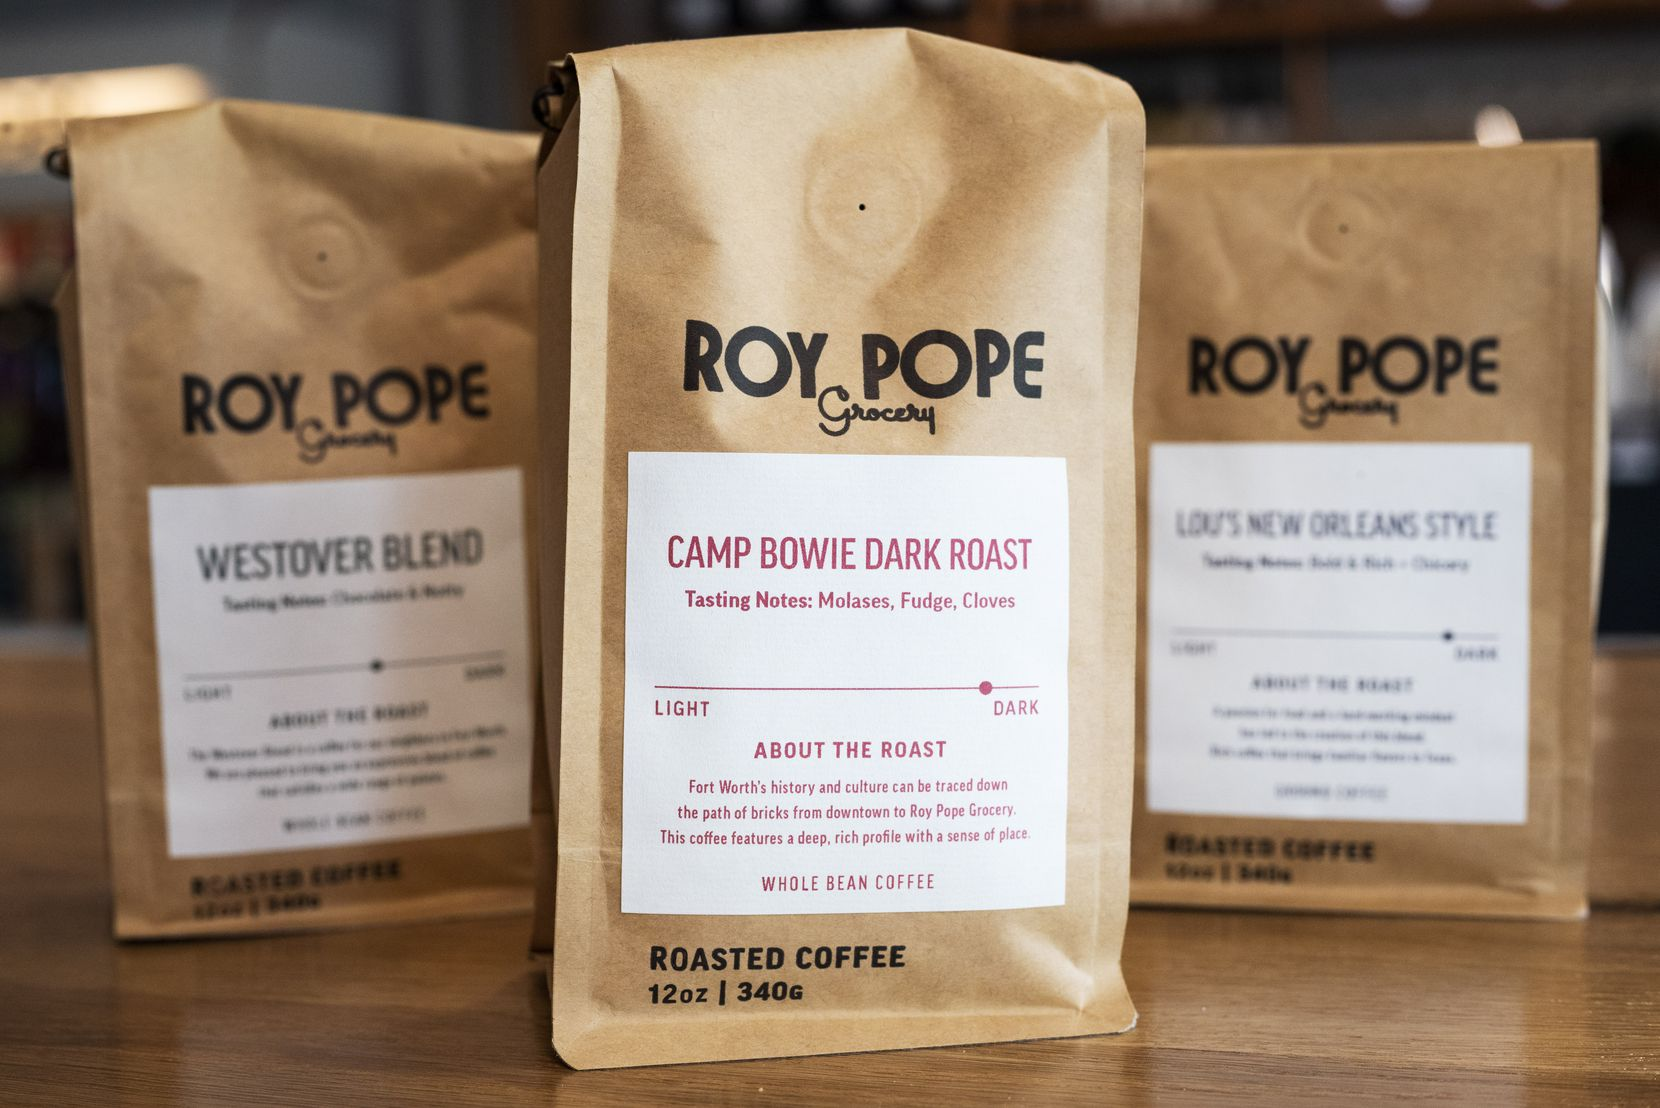 Dallas-based Frame Coffee Company makes Roy Pope Grocery blends such as Camp Bowie Dark Roast, center, Westover Blend, left, and Lou's New Orleans Style coffee.